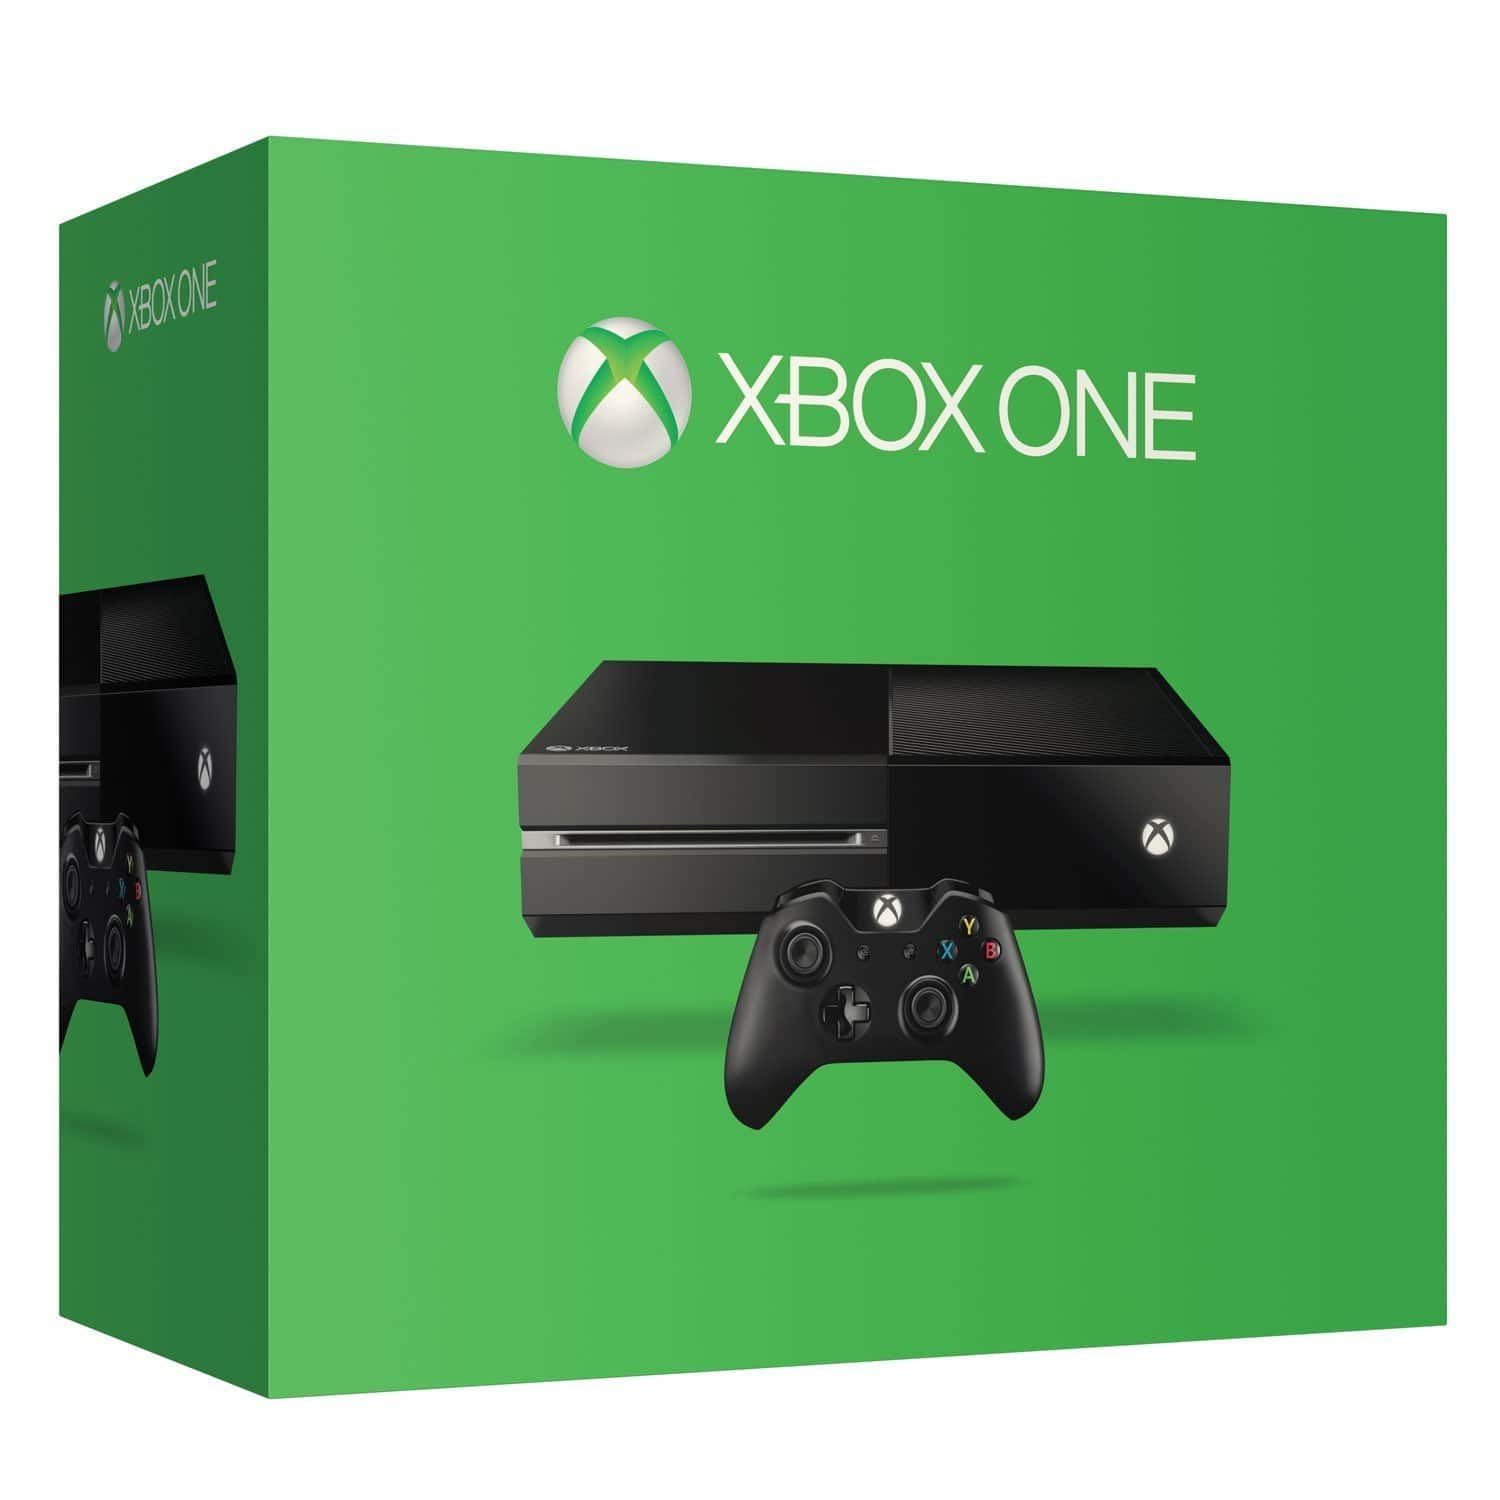 Xbox One Console $299.99 - No tax in some states